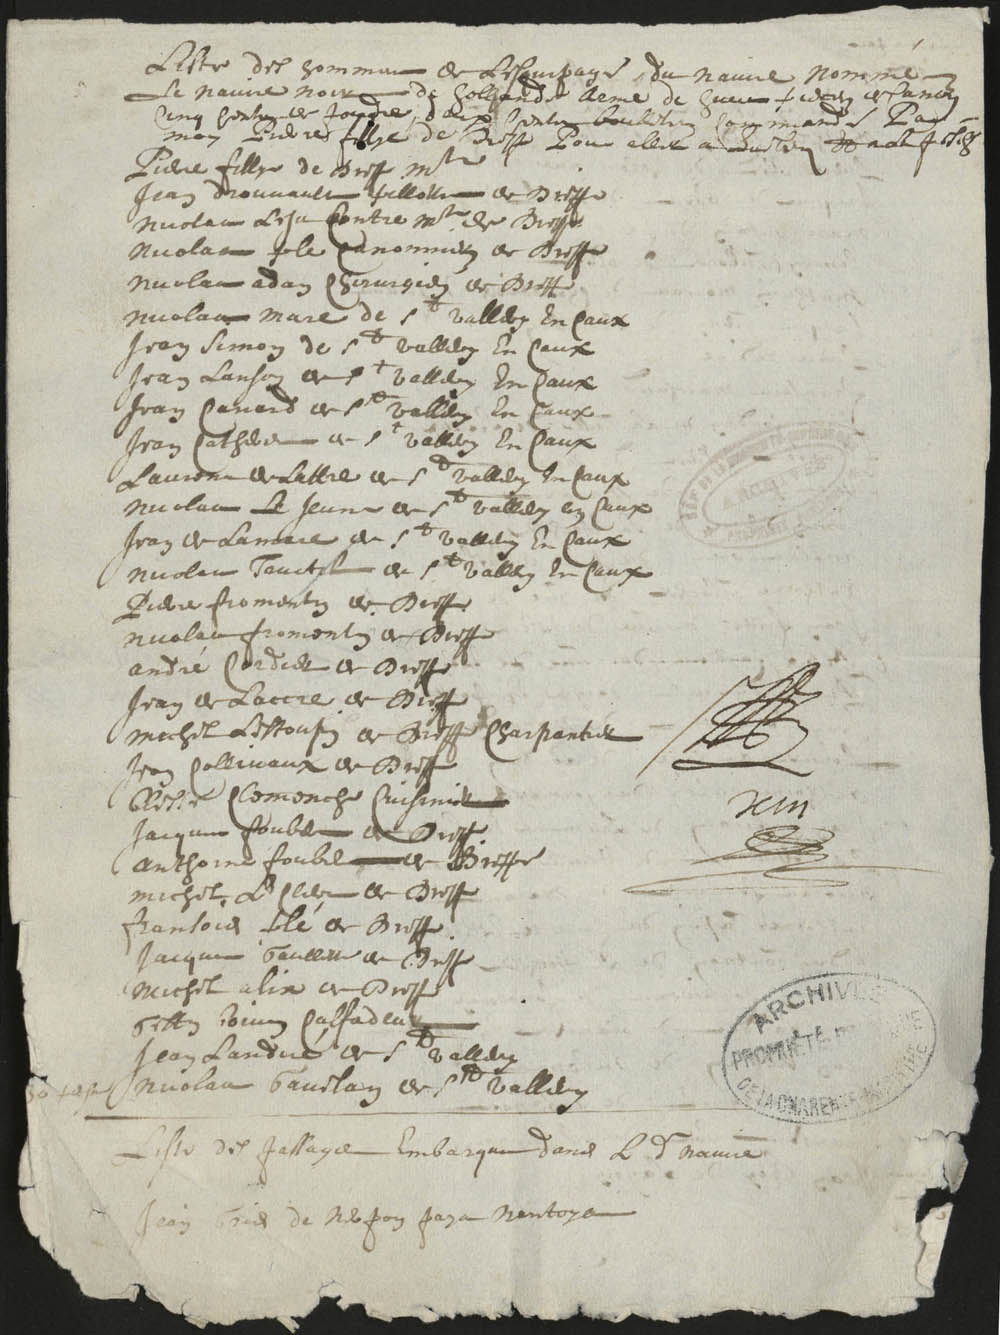 List of crewmen and passengers on the ship Le Noir of Holland, Captain Pierre Fillye, sailing from Dieppe for Québec to fish, 1664 FR AD17 B 5665 pièce 110